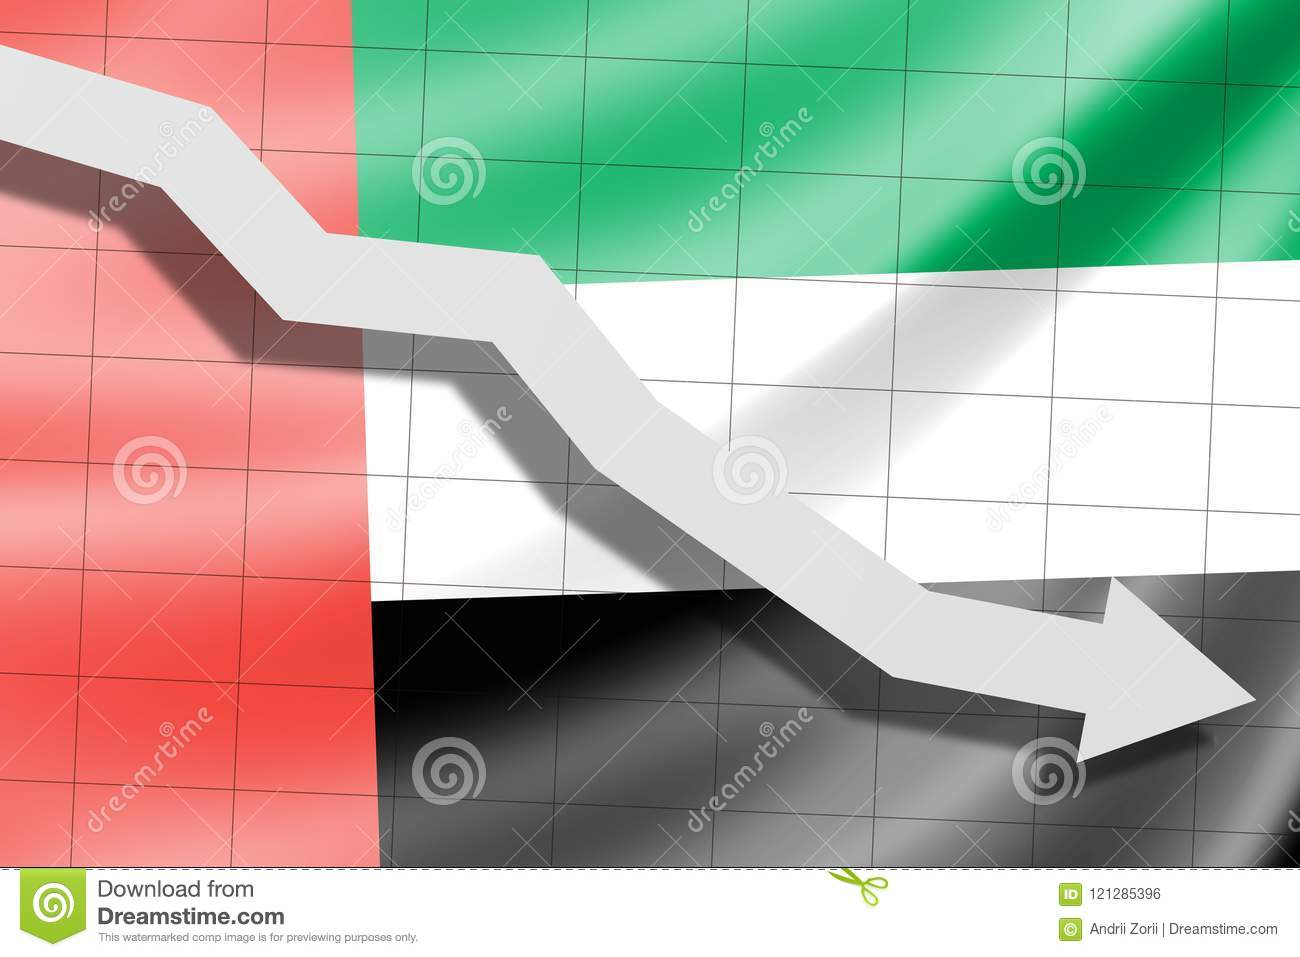 The arrow falls on the background of the United Arab Emirates flag